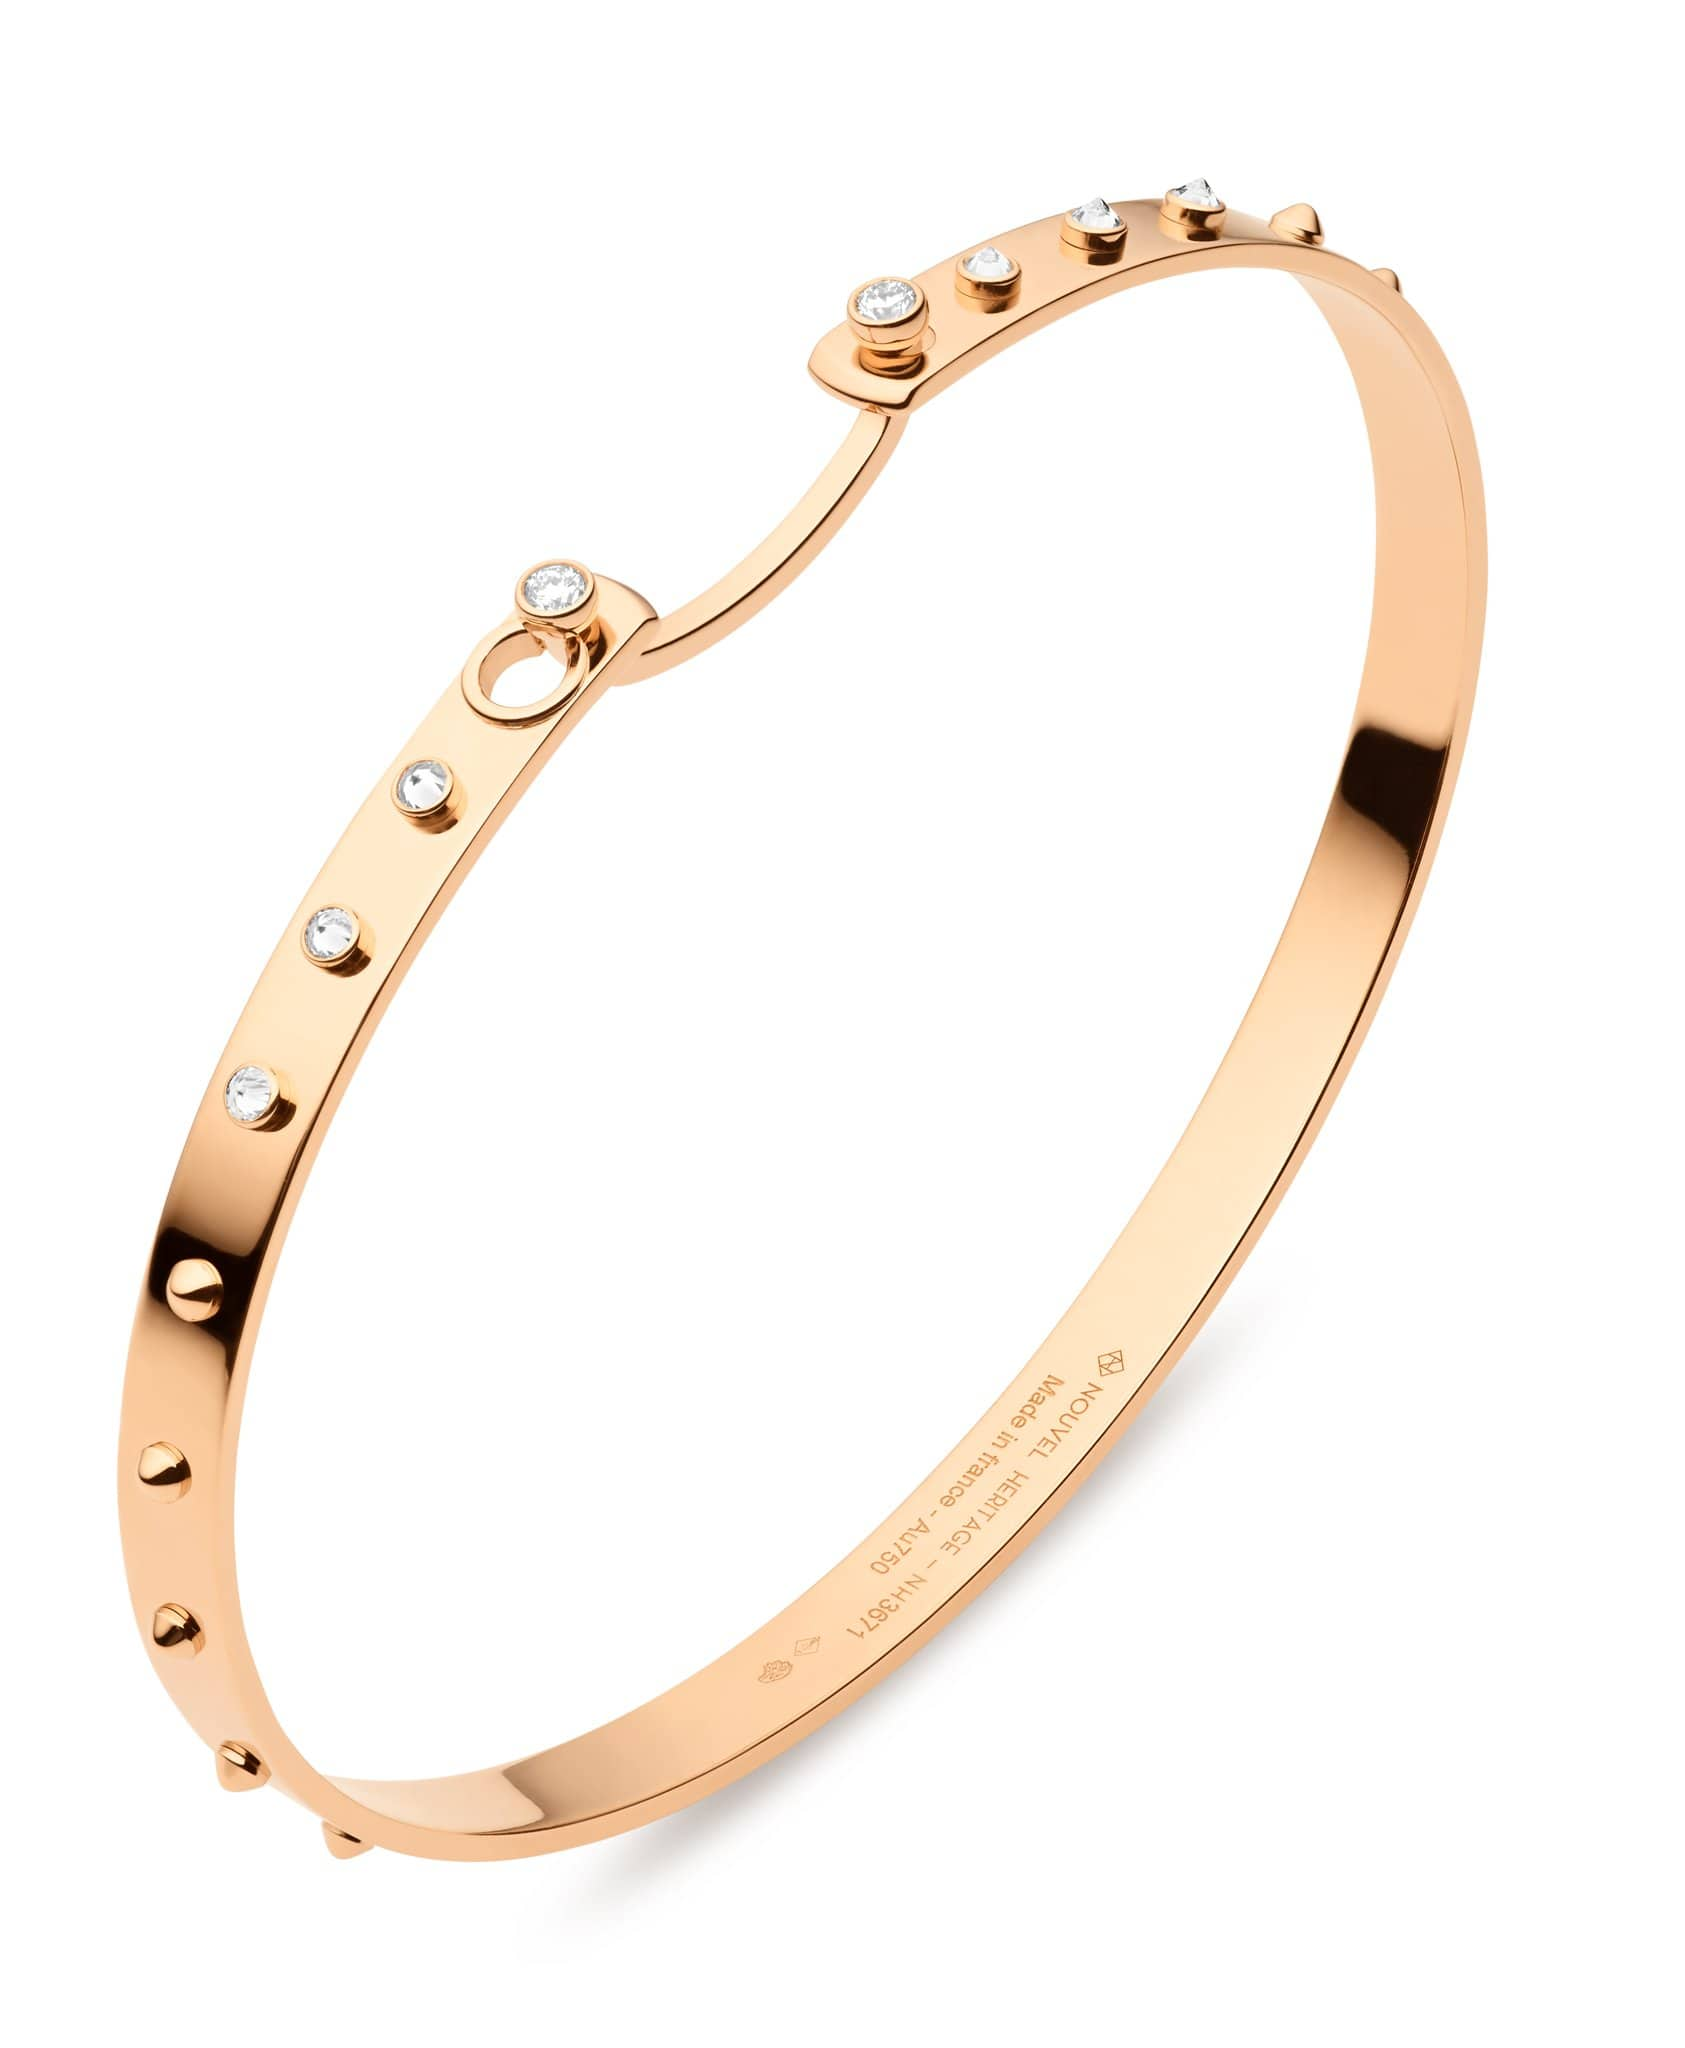 Brunch in NY Mood Bangle: Discover Luxury Fine Jewelry | Nouvel Heritage